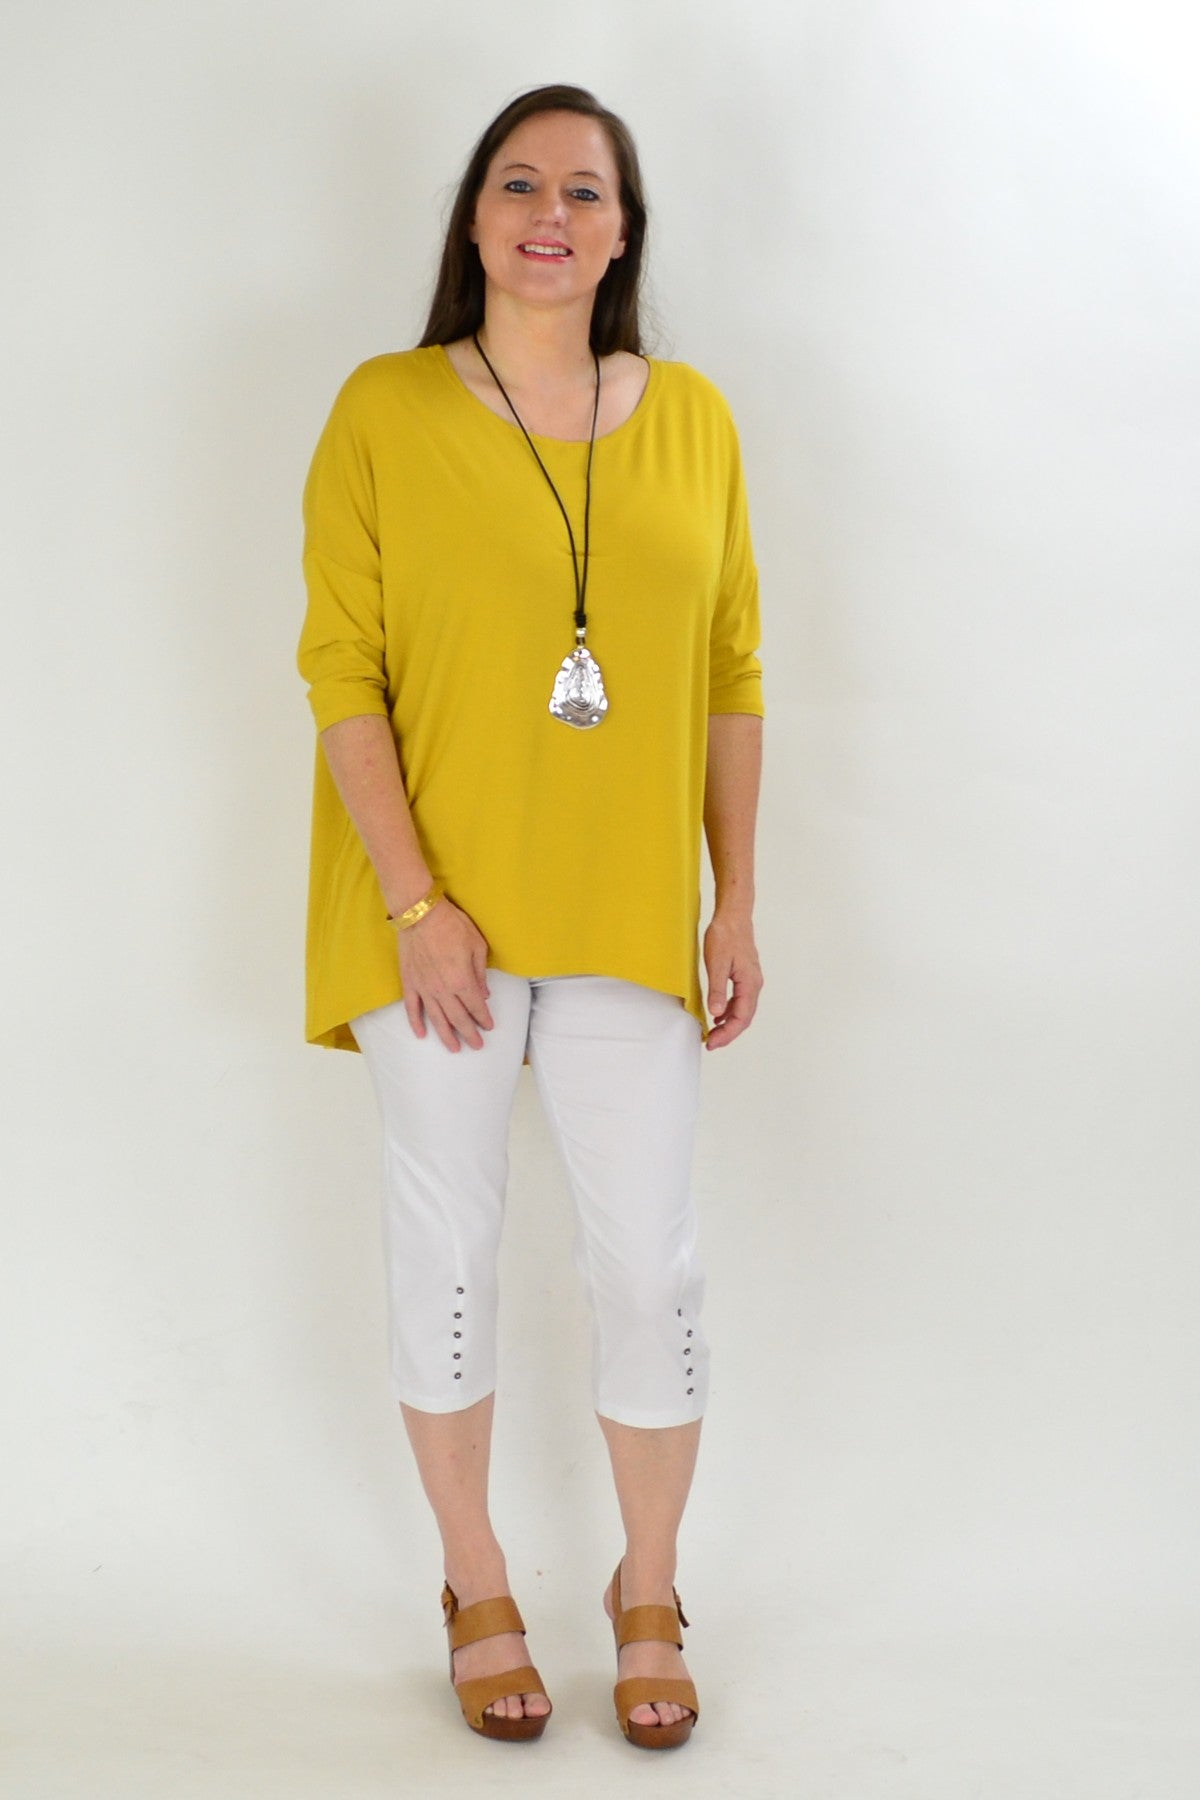 Mustard Bamboo Tunic Top - at I Love Tunics @ www.ilovetunics.com = Number One! Tunics Destination